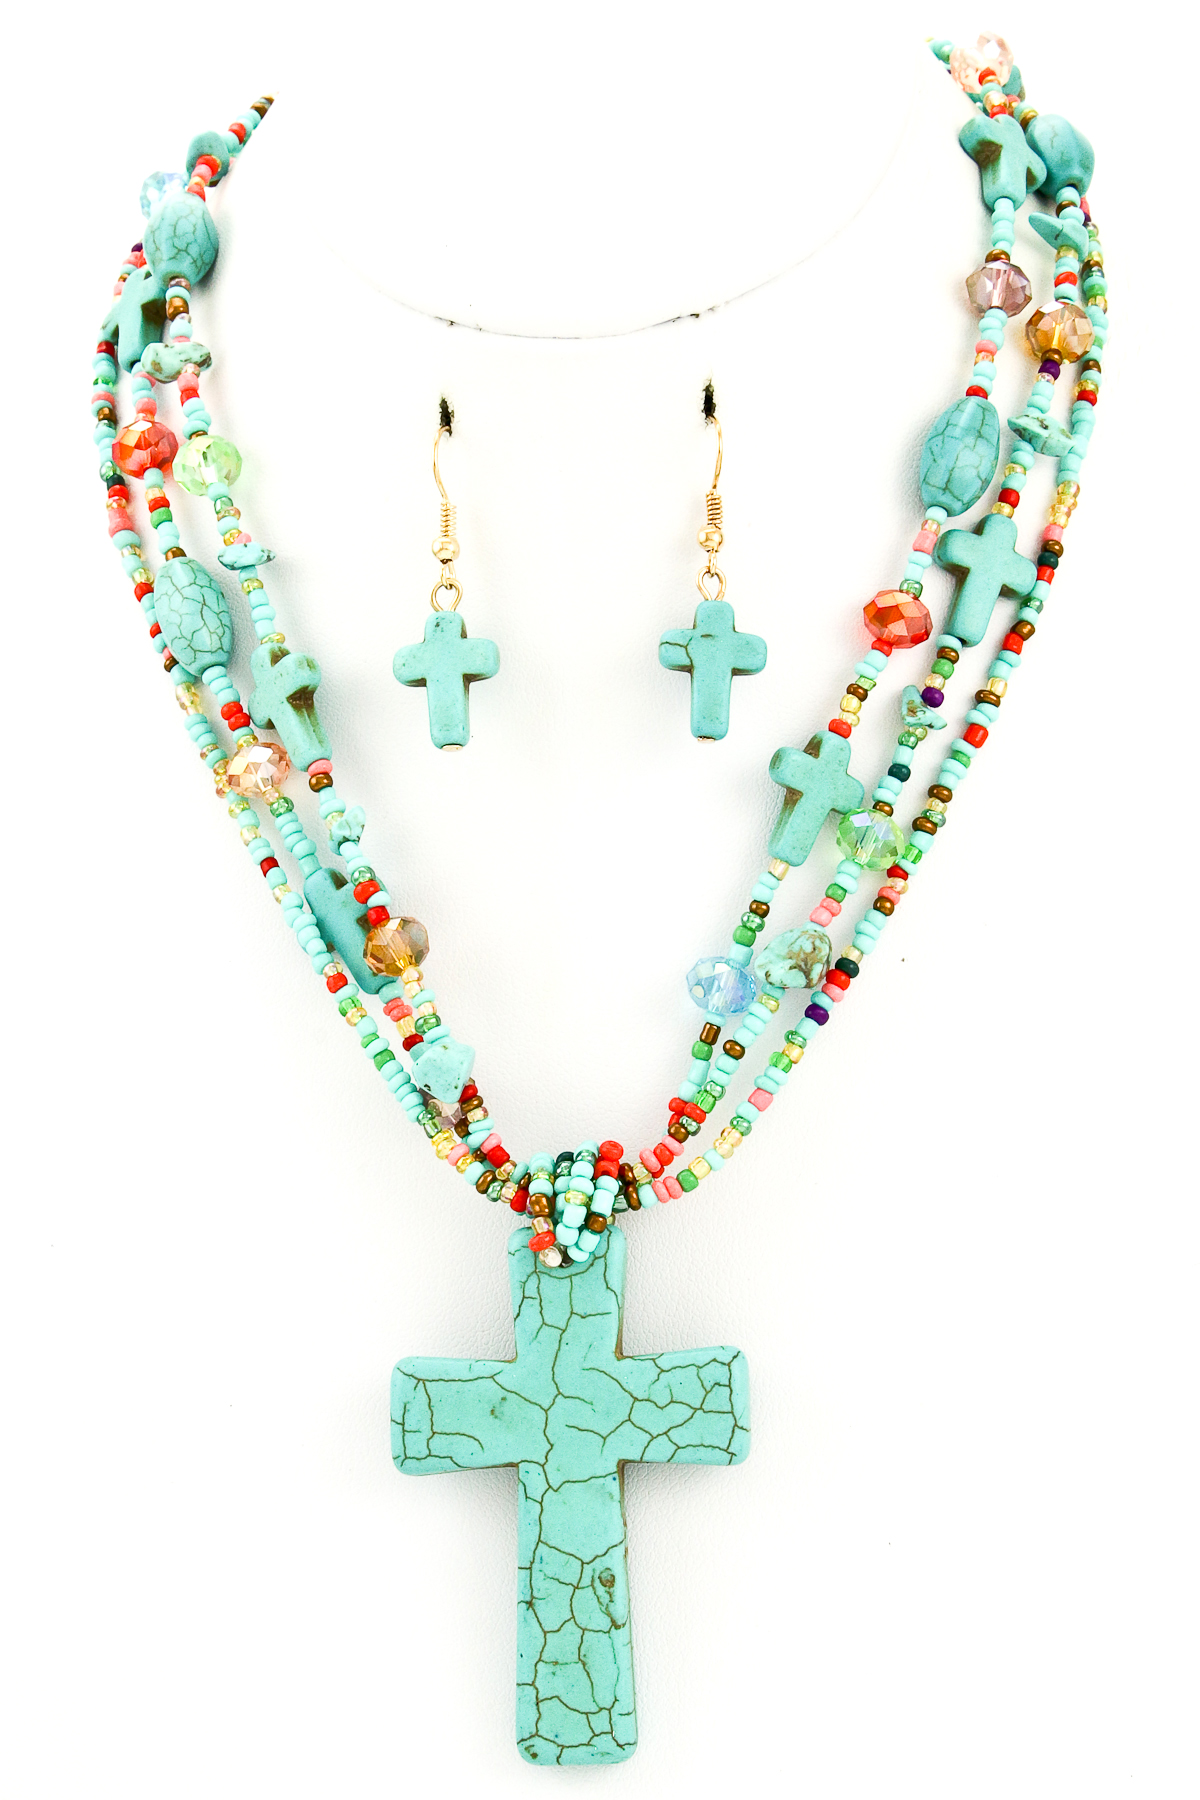 Stone Cross Seed Bead Necklace Set